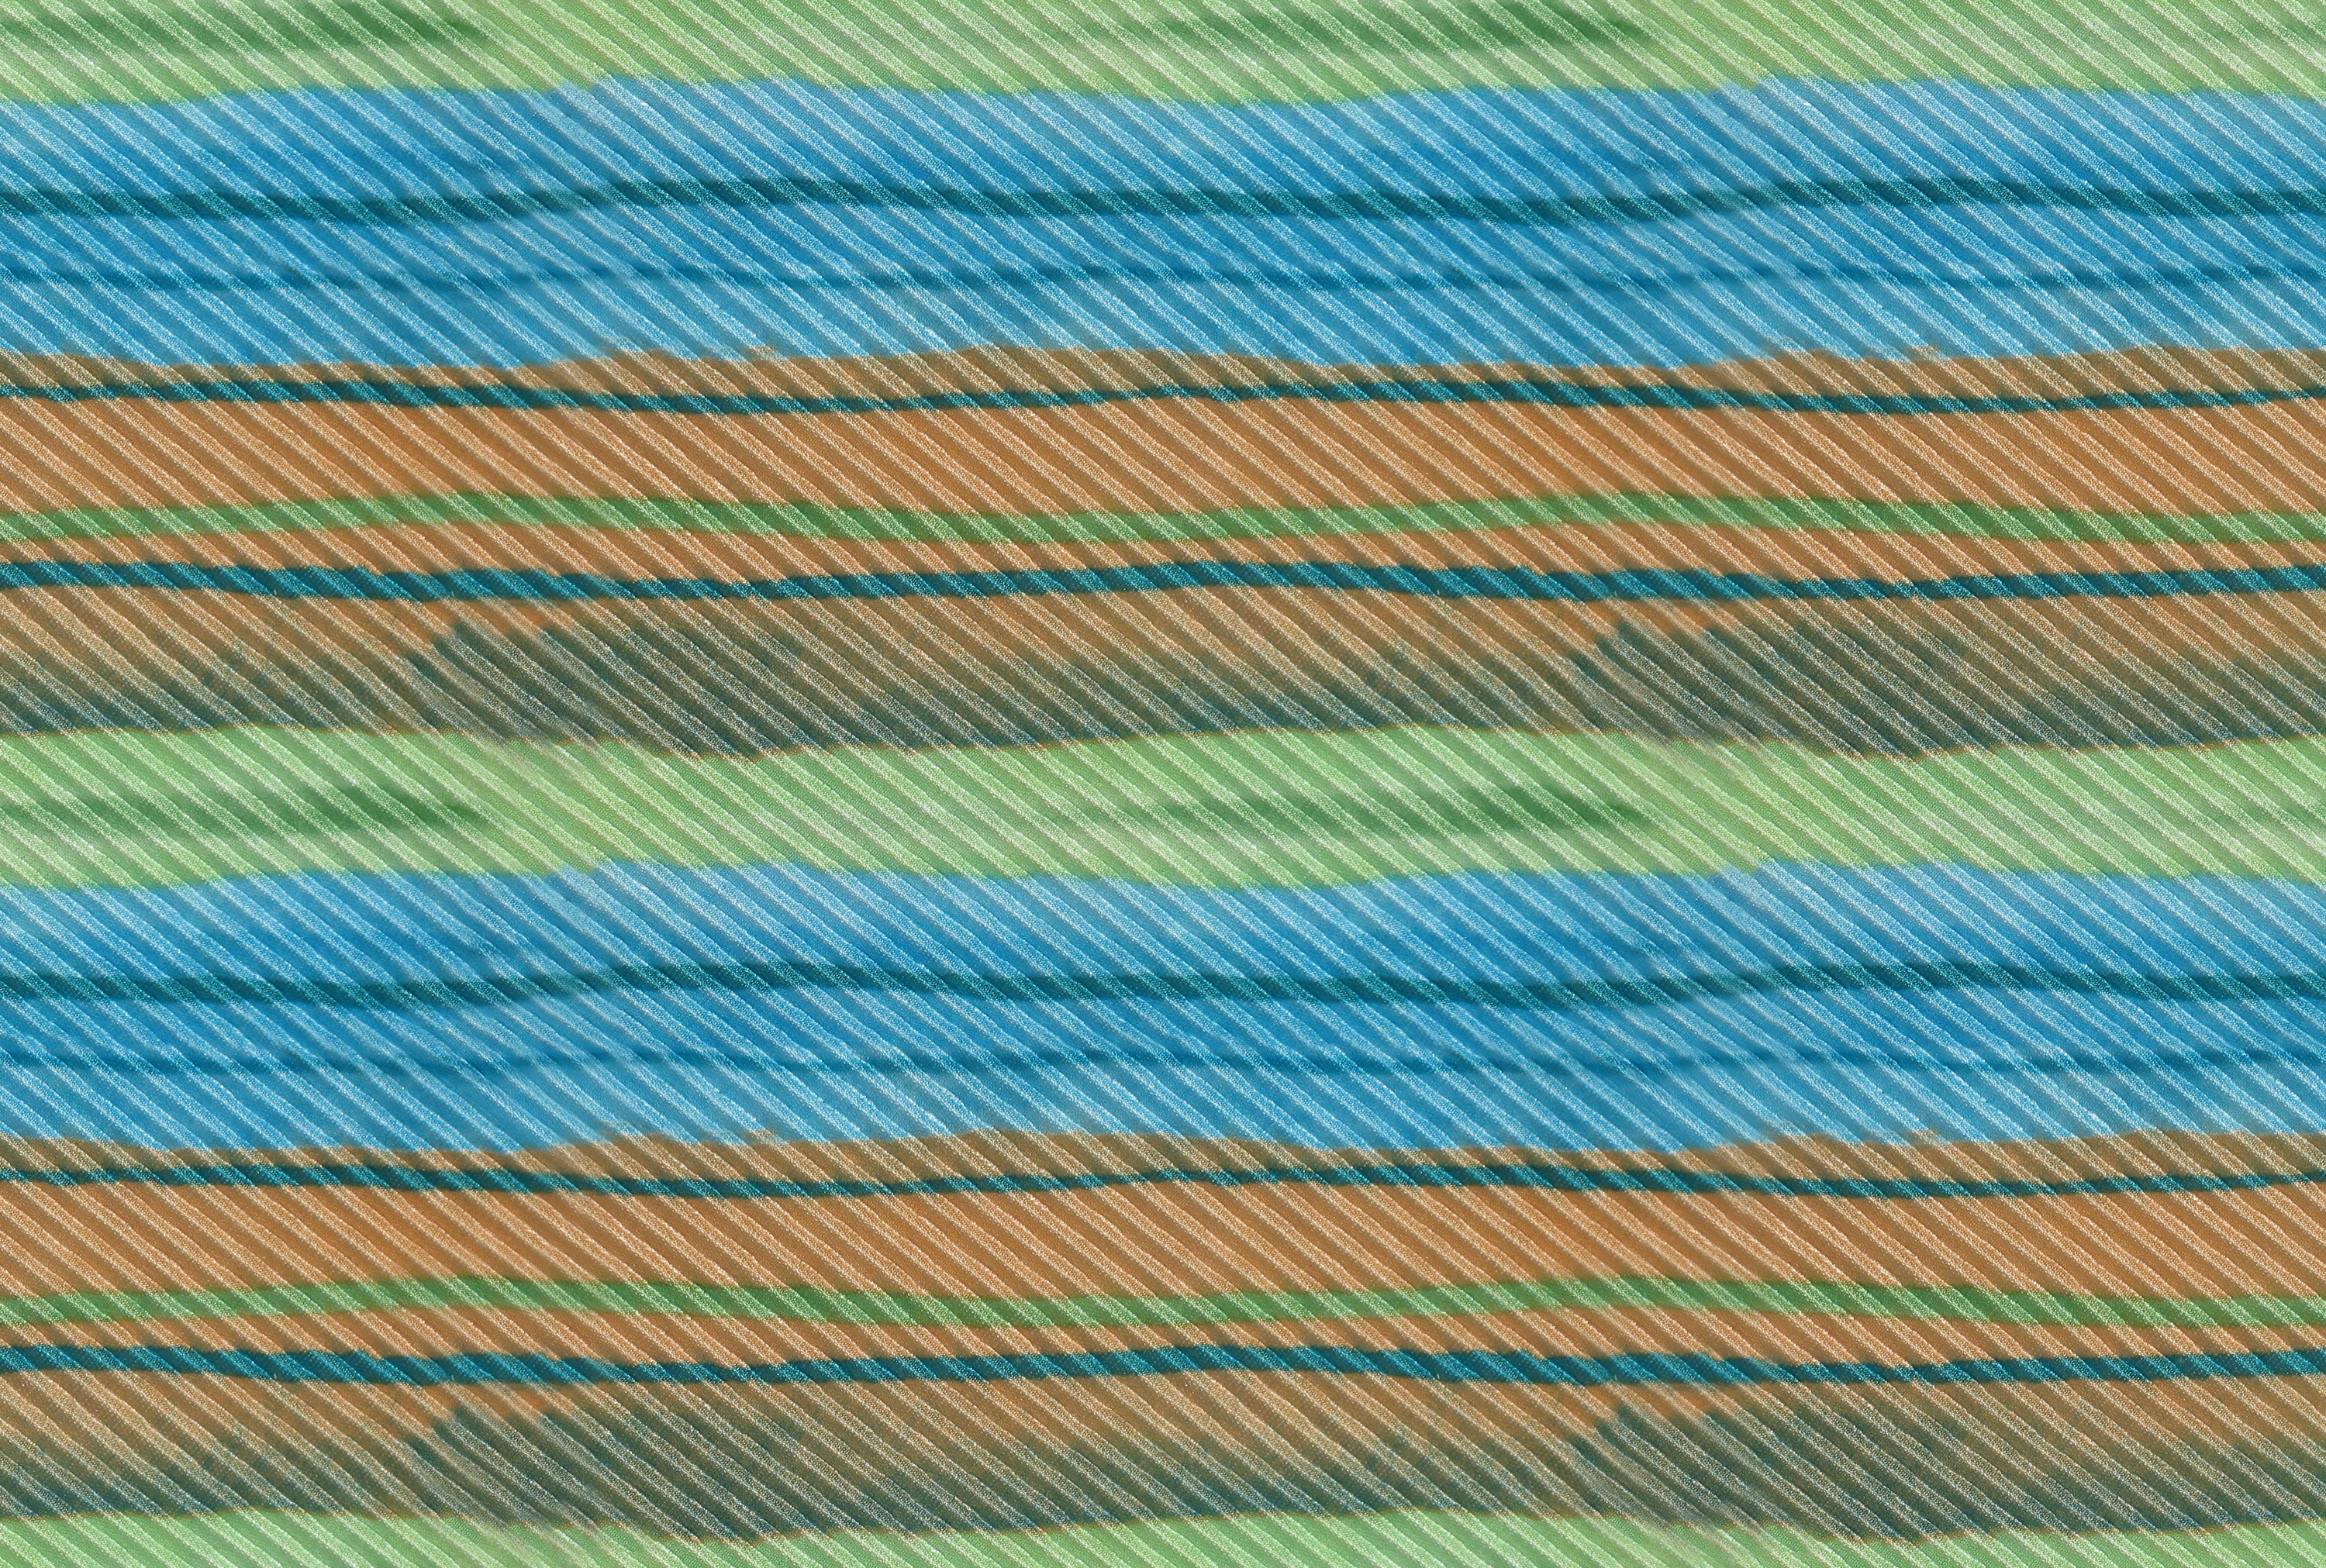 Colored Cloth Texture